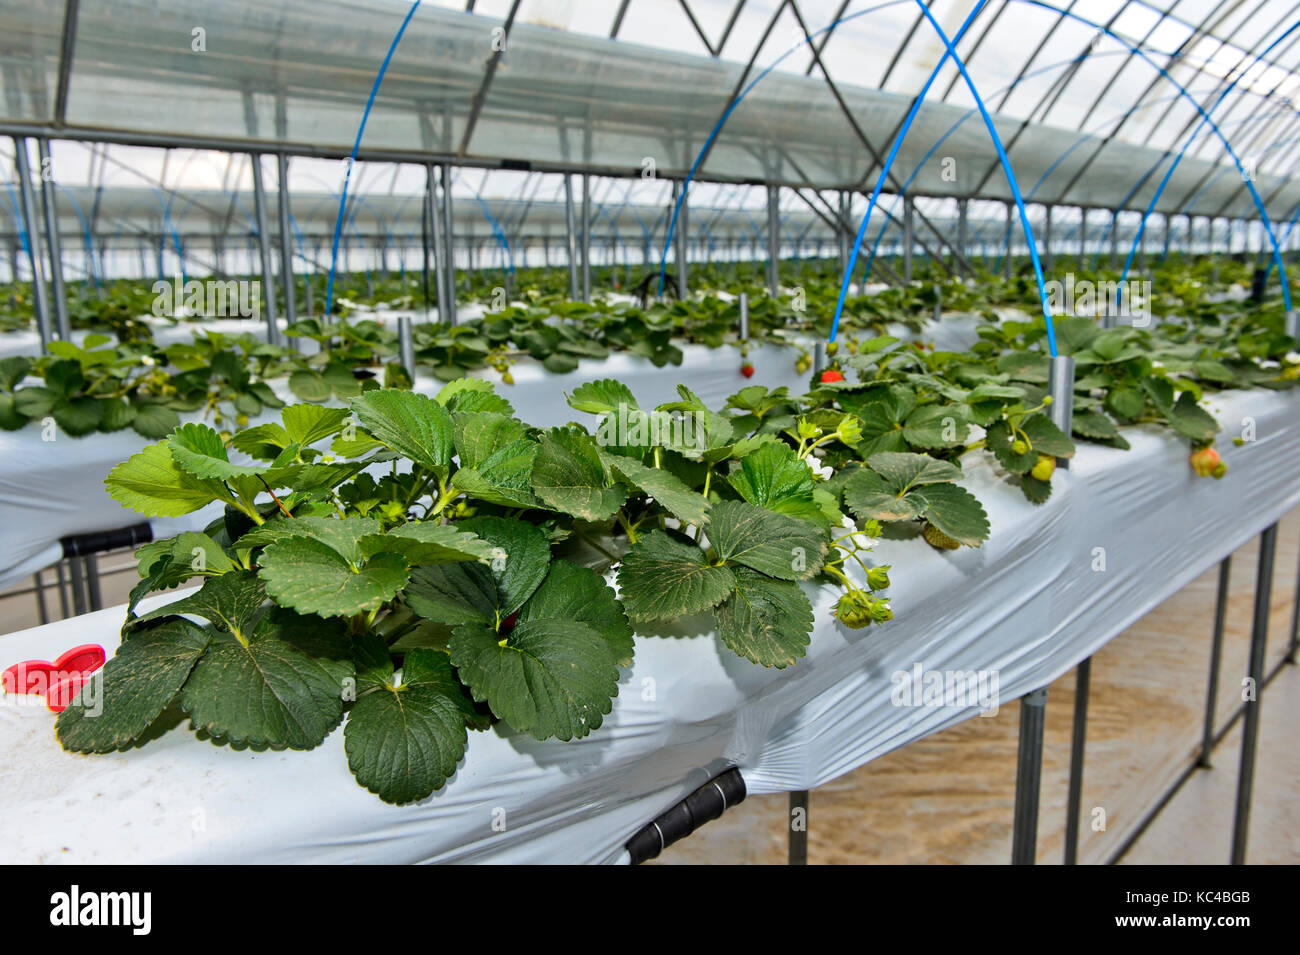 Strawberry production in soil-free substrates in a greenhouse, Monnaran site, Mongolian-Japanese joint venture Everyday - Stock Image